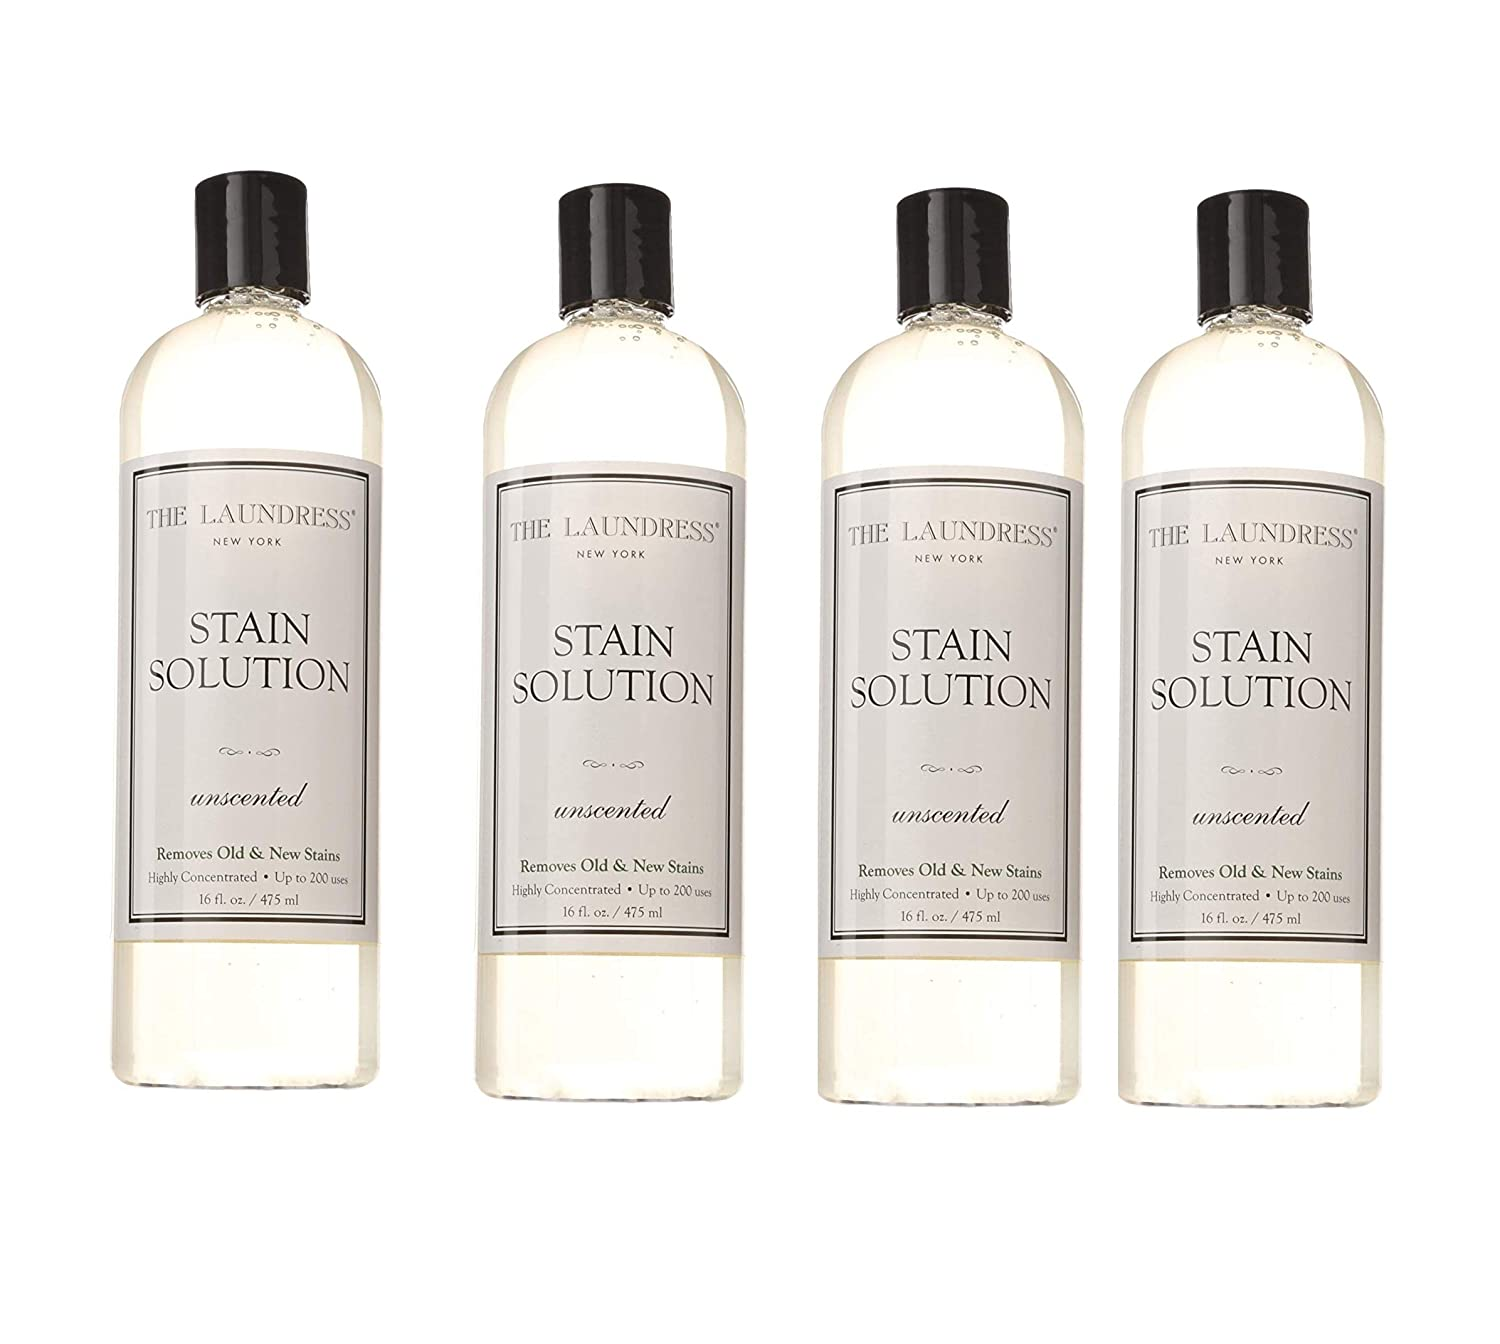 The Laundress Stain Solution, Unscented, 16 ounces S-020